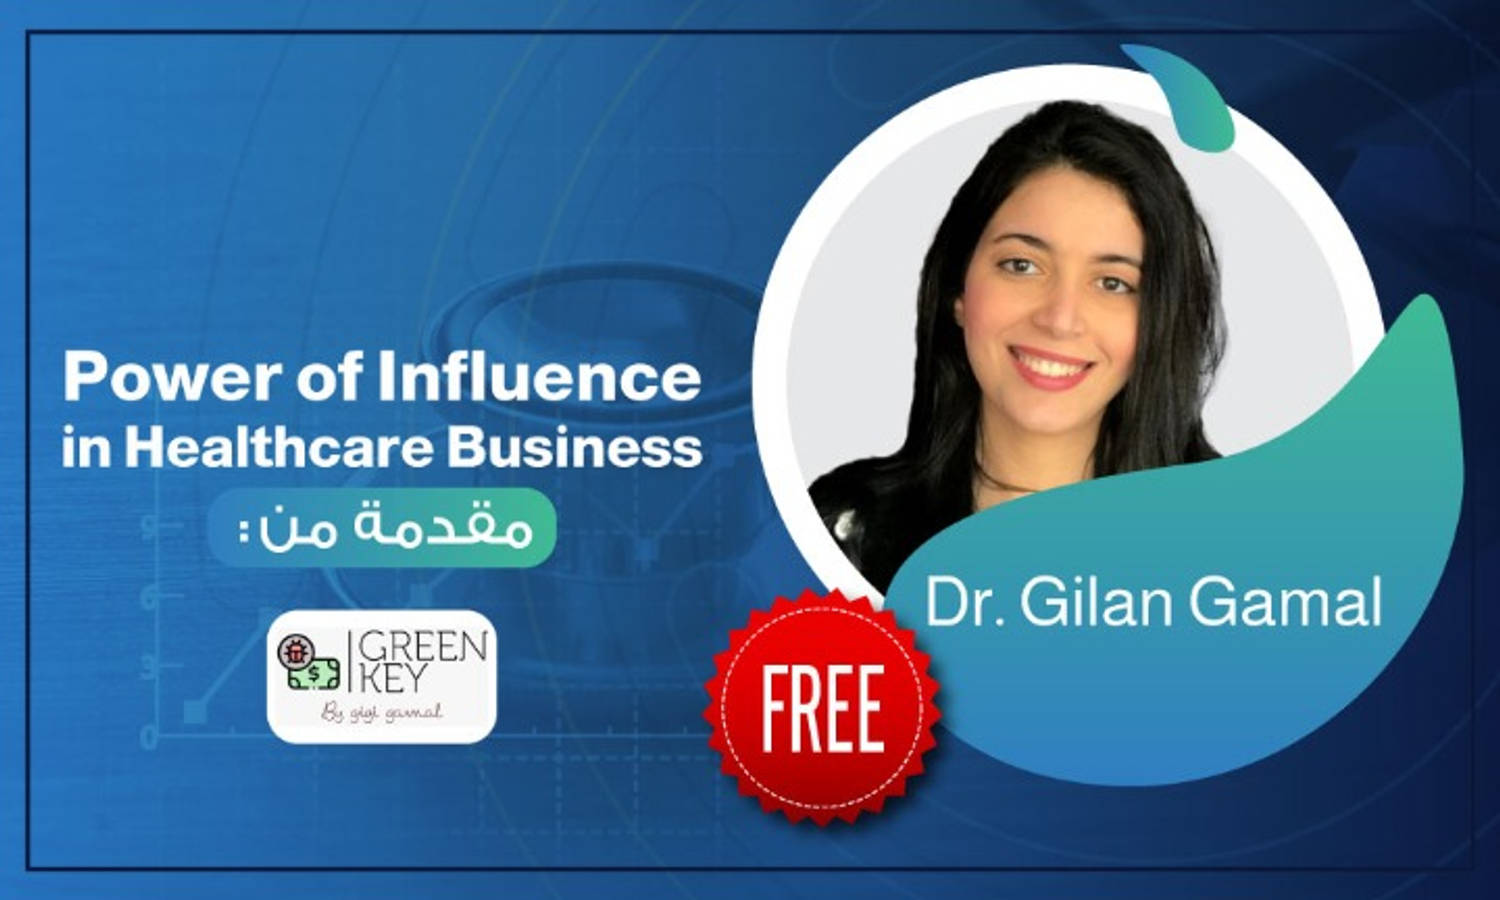 Power of Influence in Healthcare Business